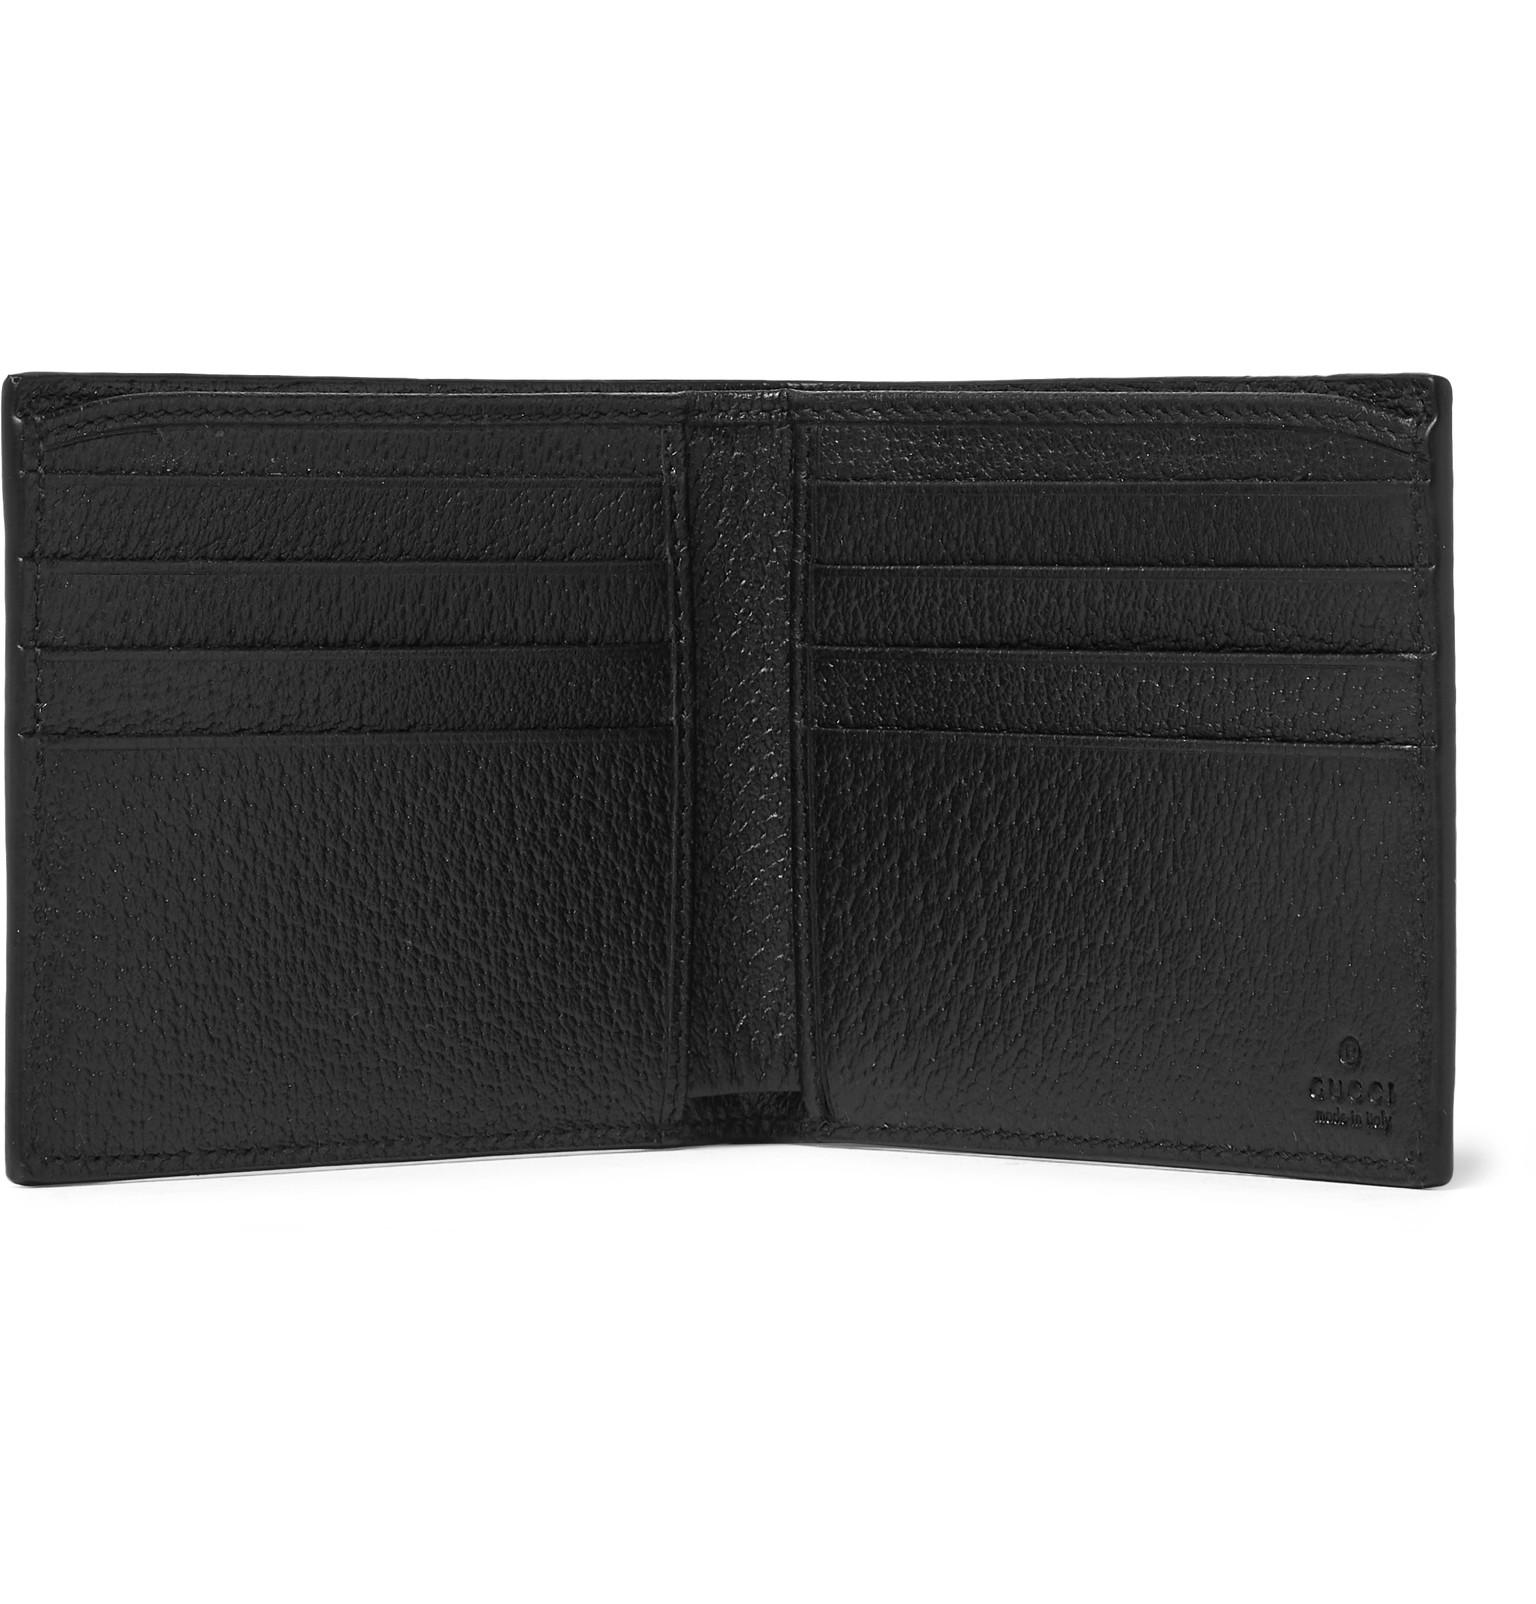 f47284d624d Gucci Marmont Full-grain Leather Billfold Wallet in Black for Men ...